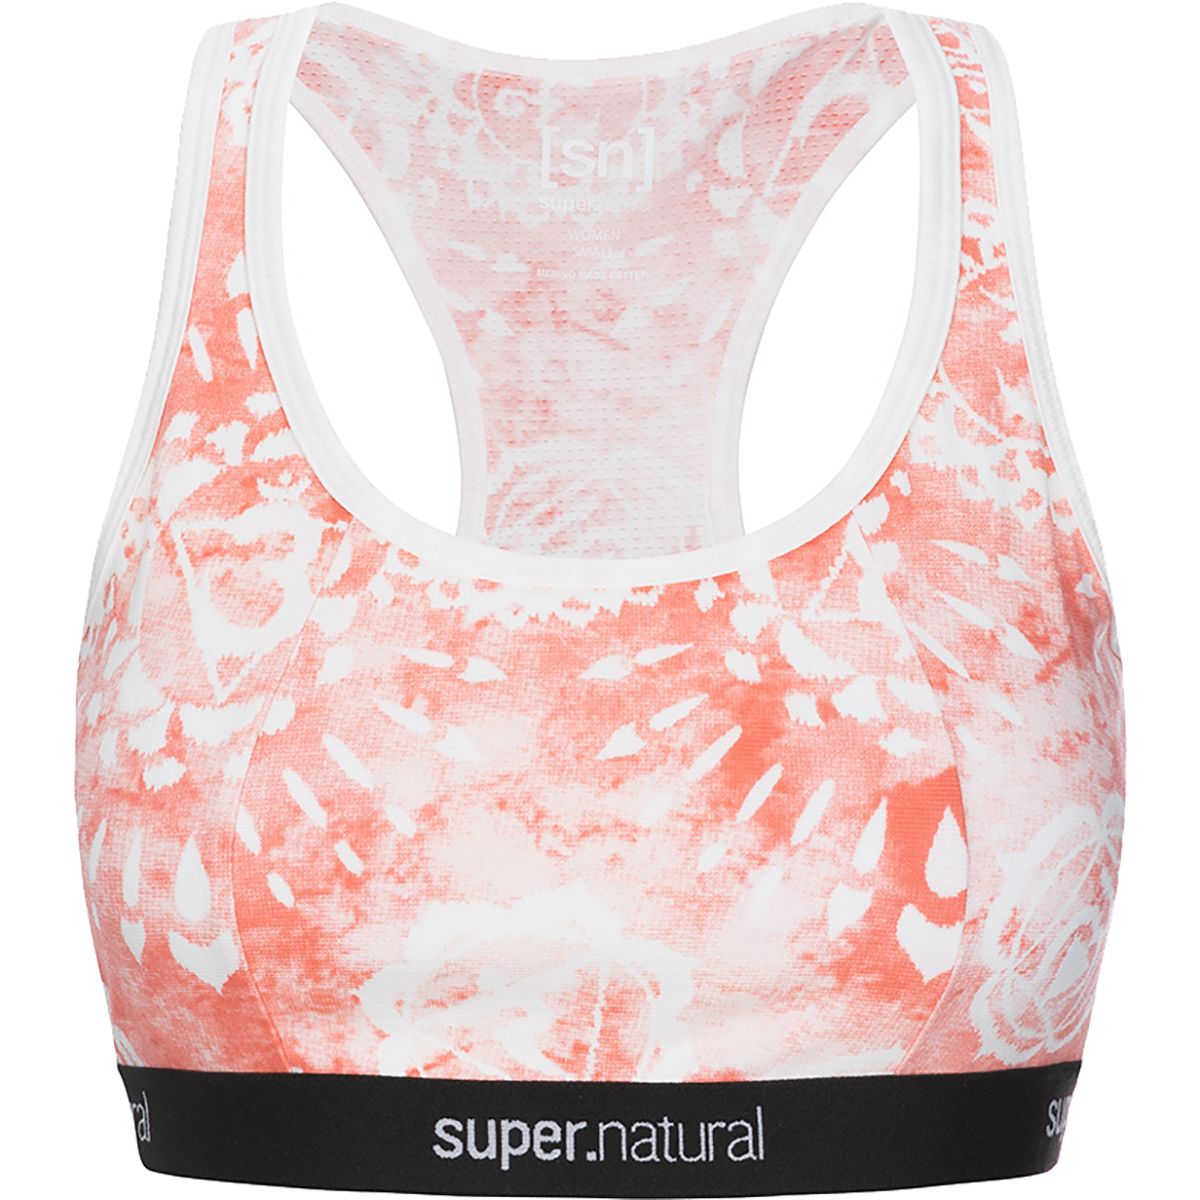 Super.Natural Damen Yoga Printed Sport BH (Größe XS, Orange) | Sport-BHs > Damen